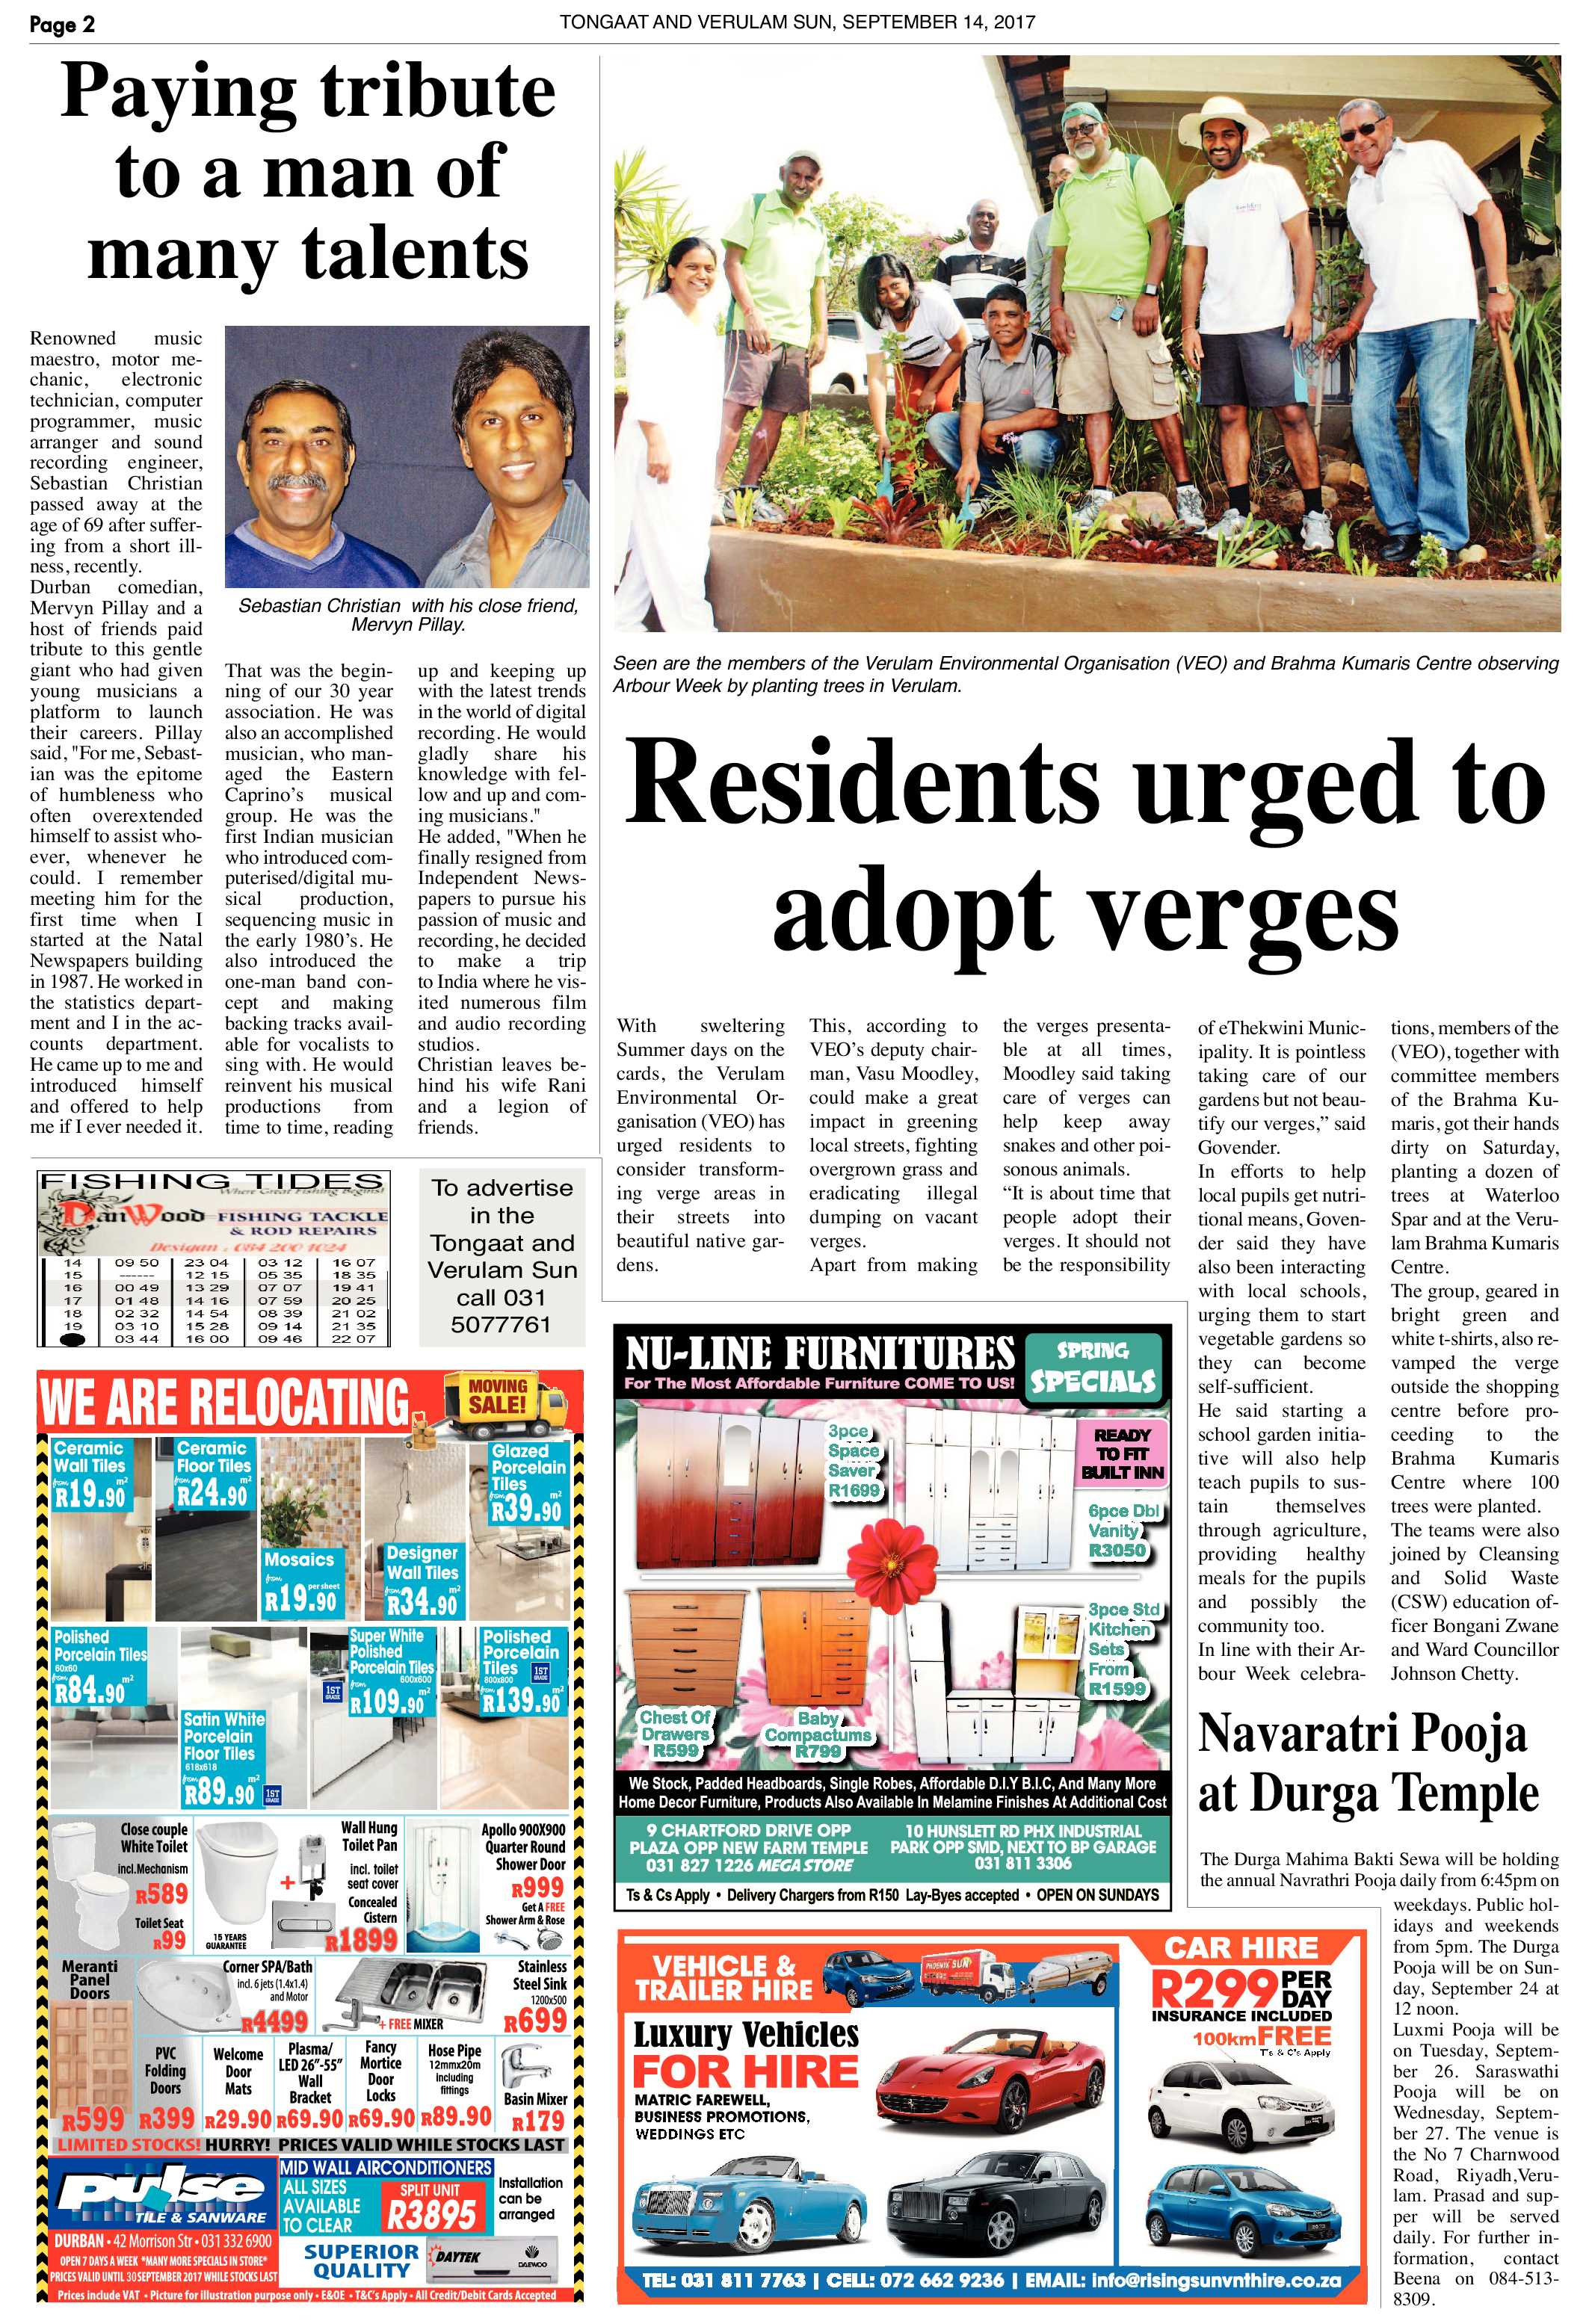 tongaat-verulam-sun-september-14-epapers-page-2